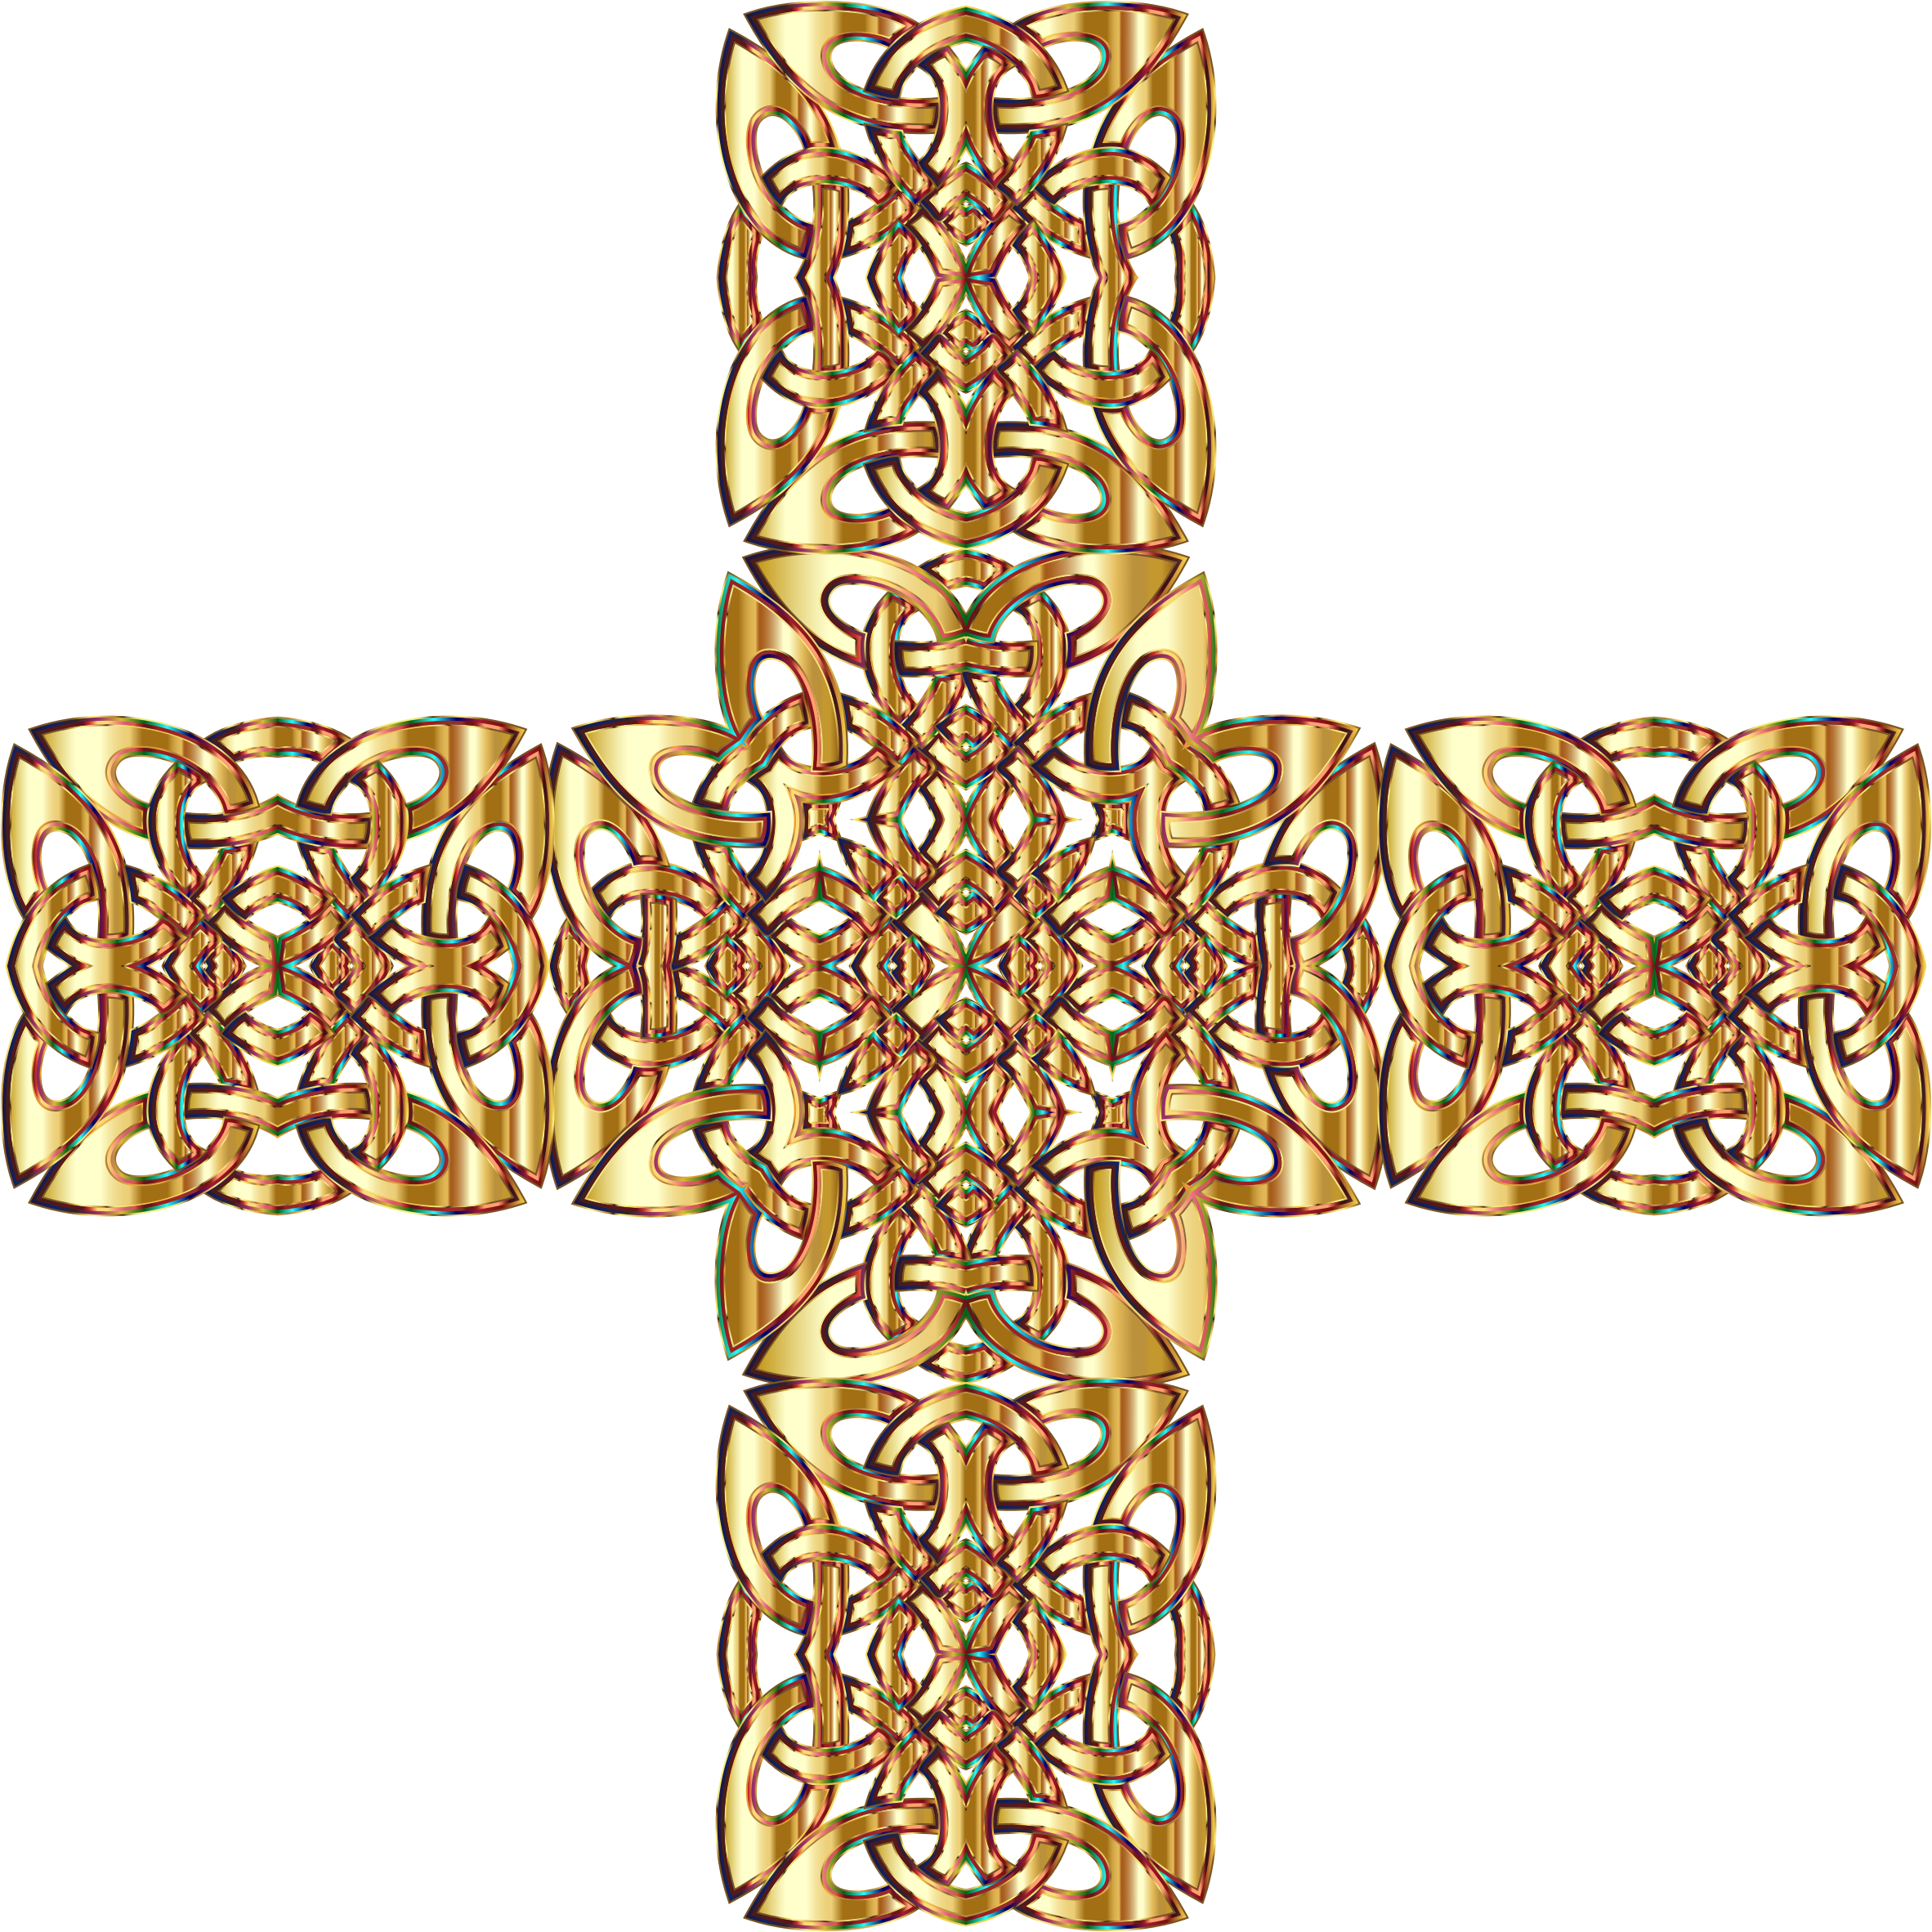 Celtic cross gold clipart clipart royalty free library Clipart - Golden Celtic Knot Cross 3 Variation 2 Without Background clipart royalty free library